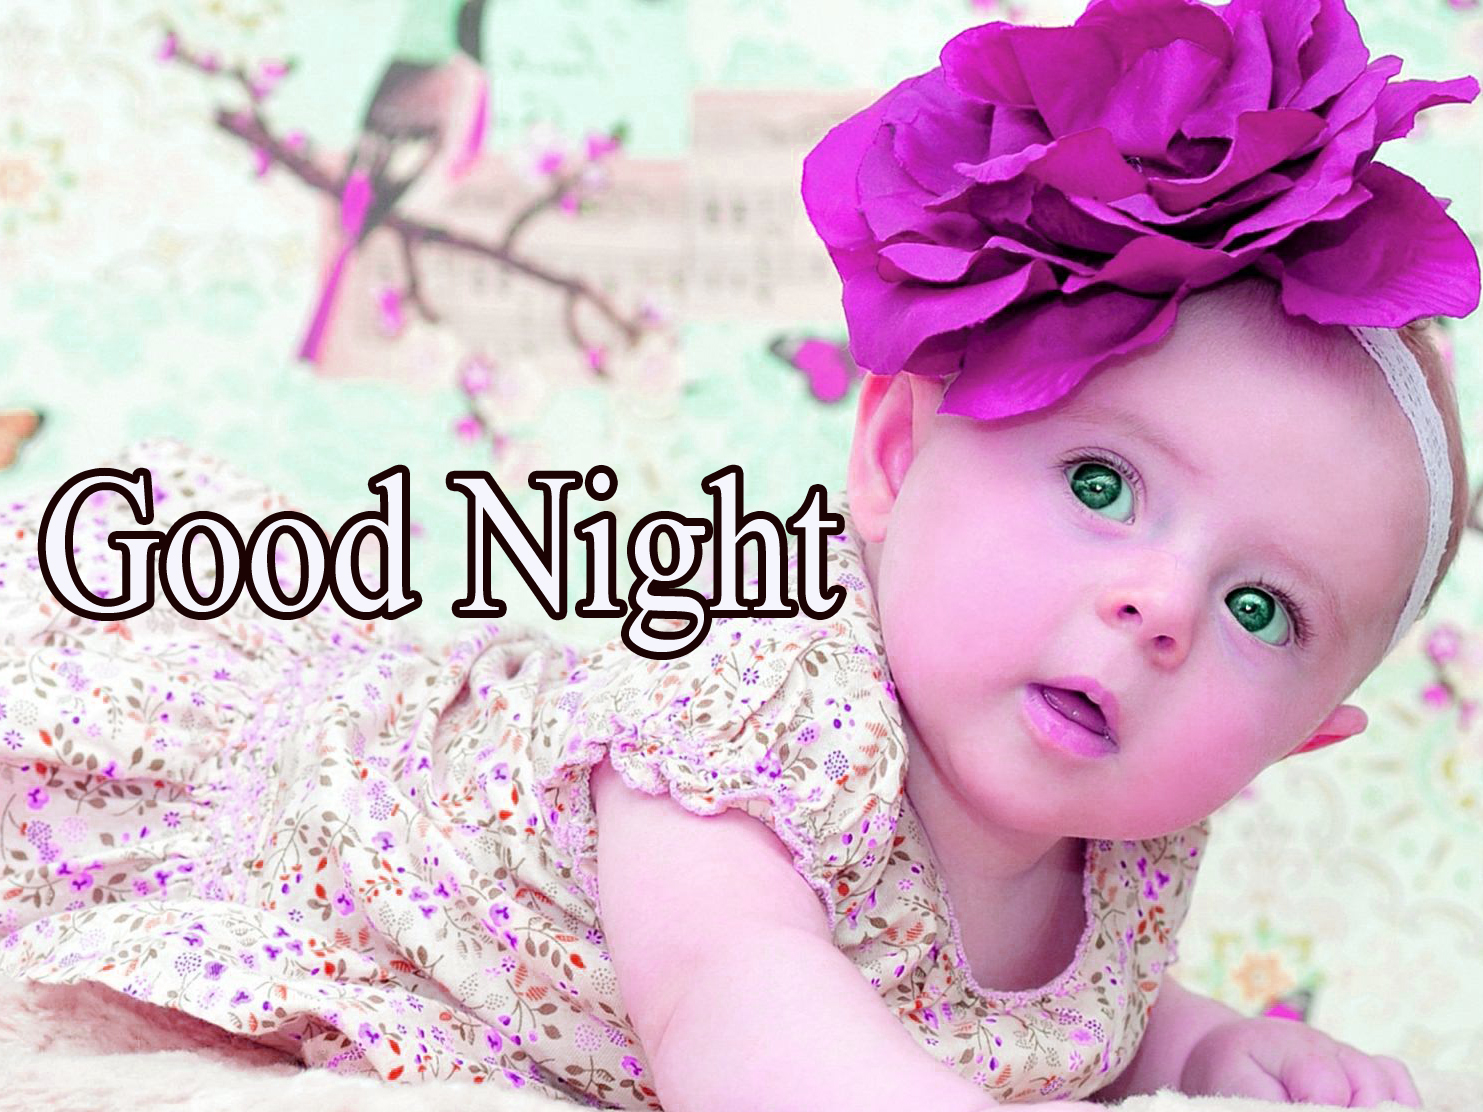 GOOD NIGHT IMAGES WITH CUTE BABY BOYS & GIRLS PHOTO FOR WHATSAPP